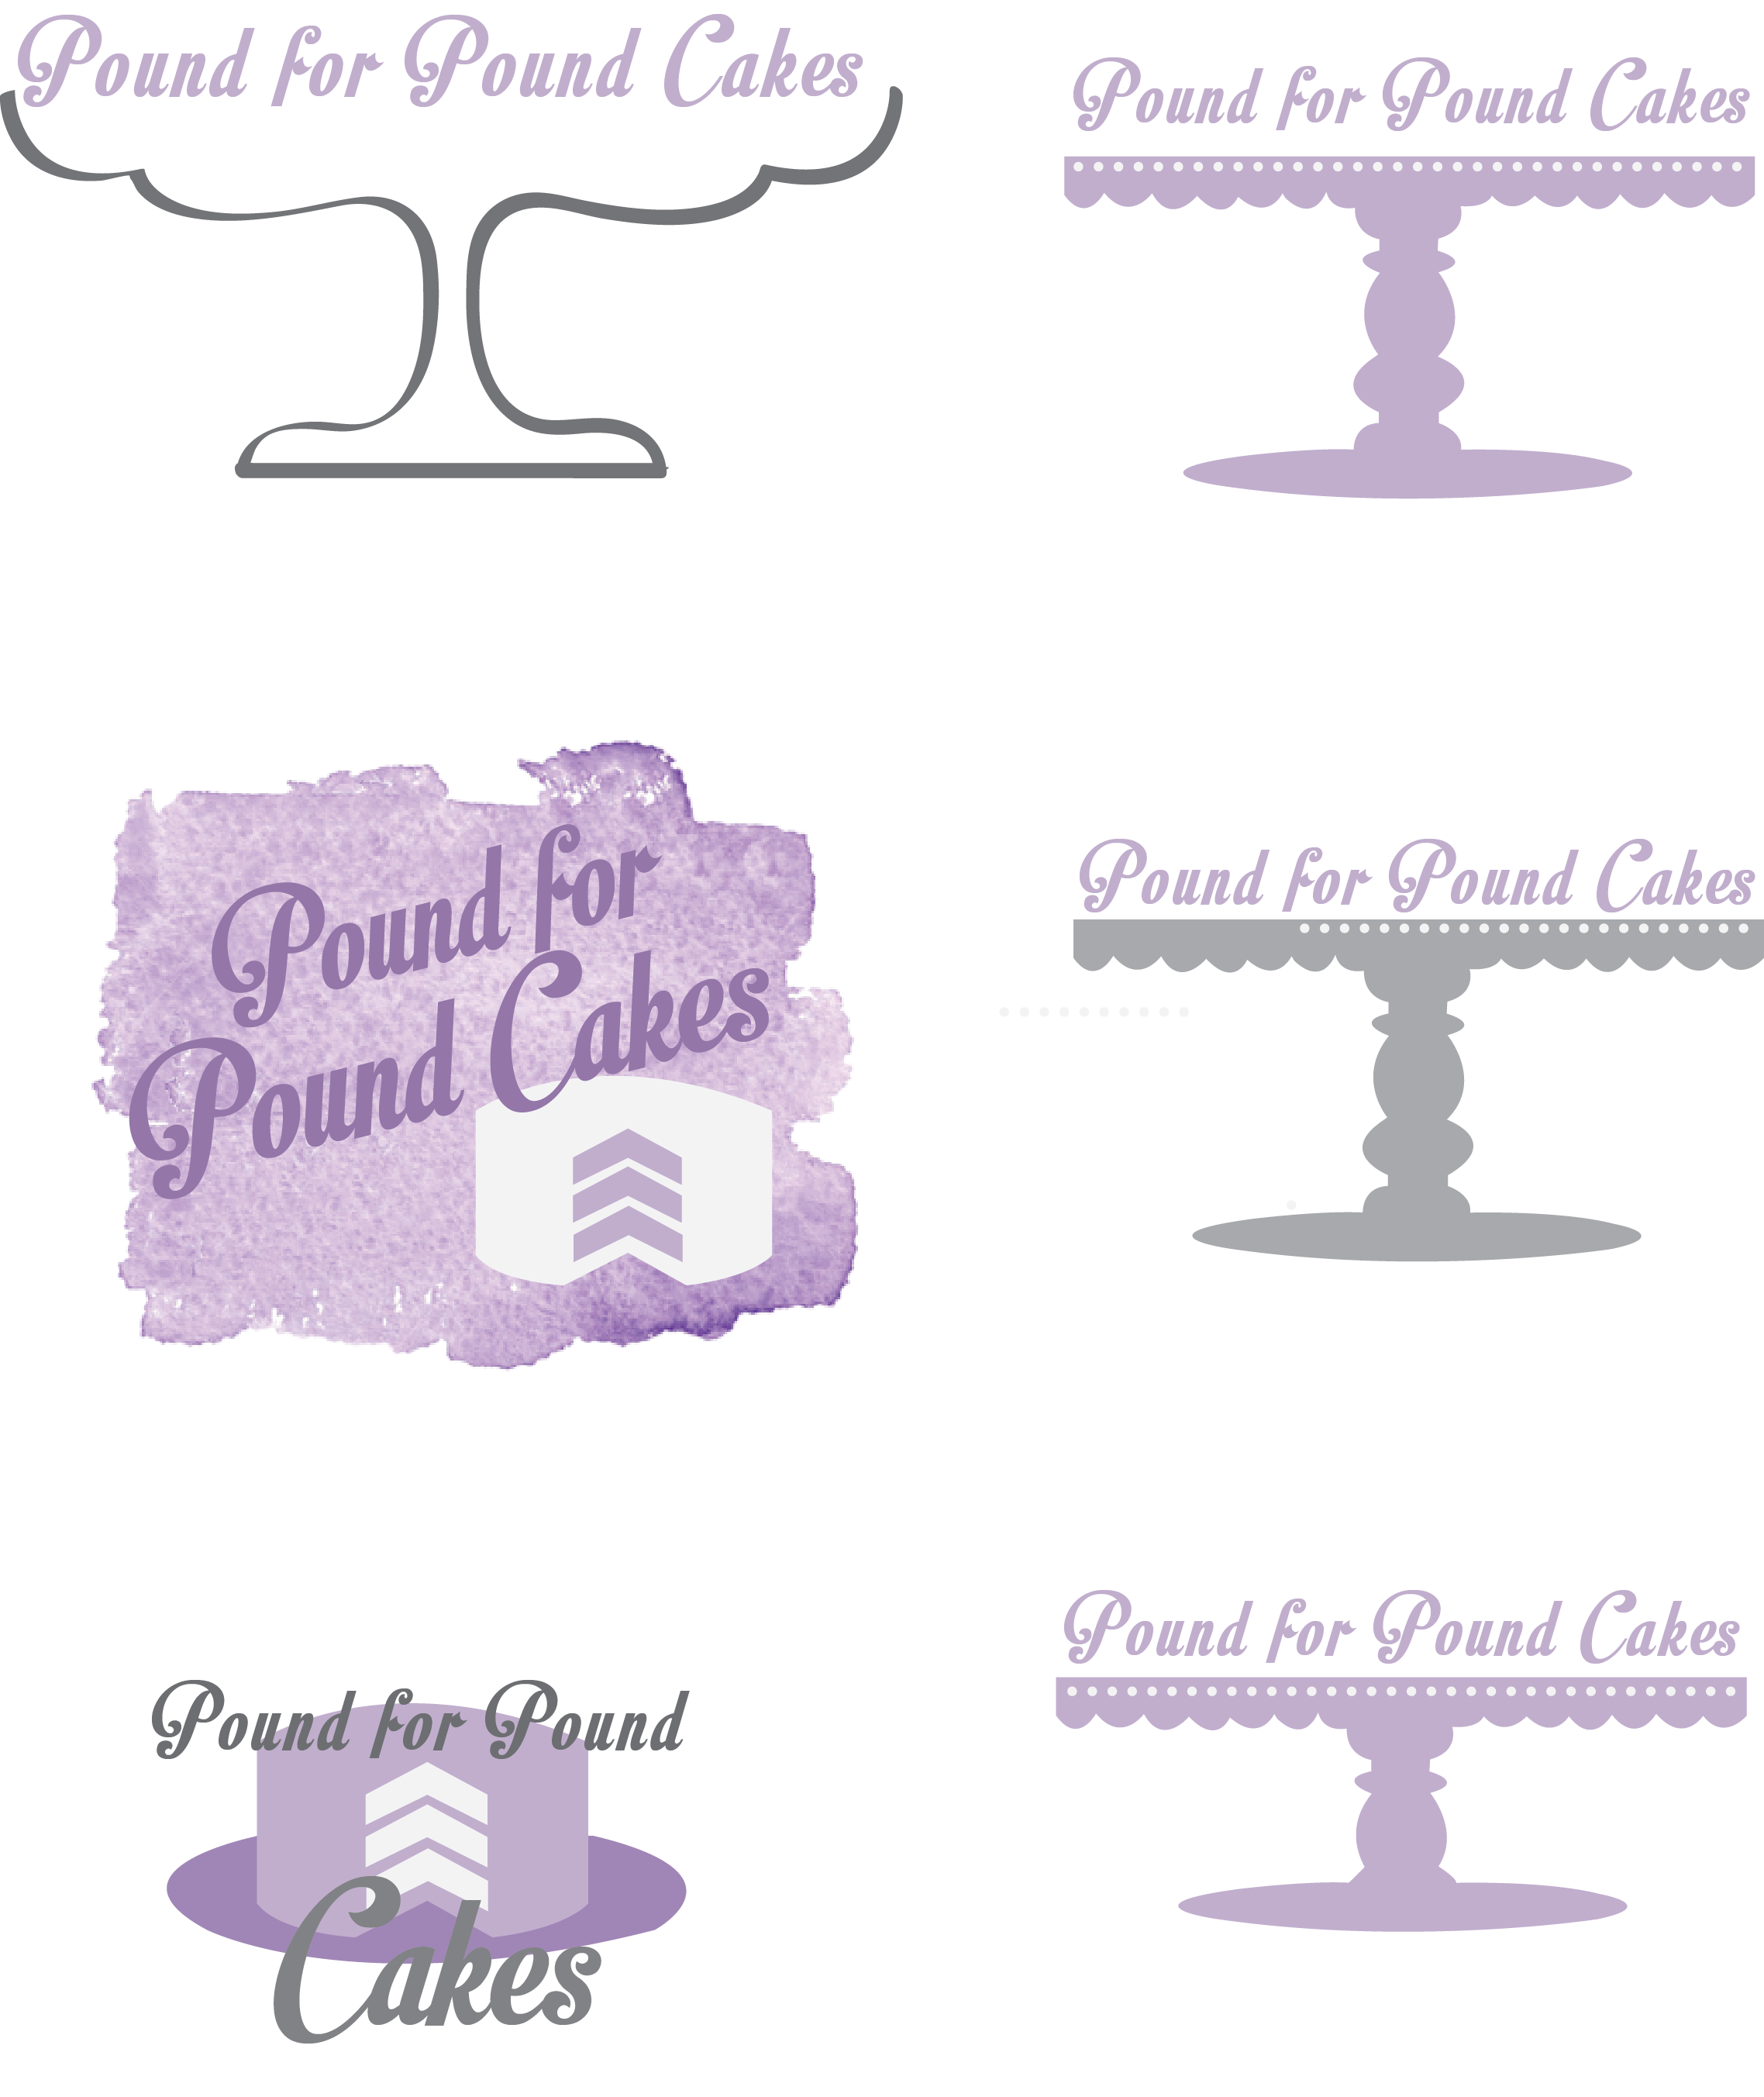 Logo Designs:Pound for Pound Cakes